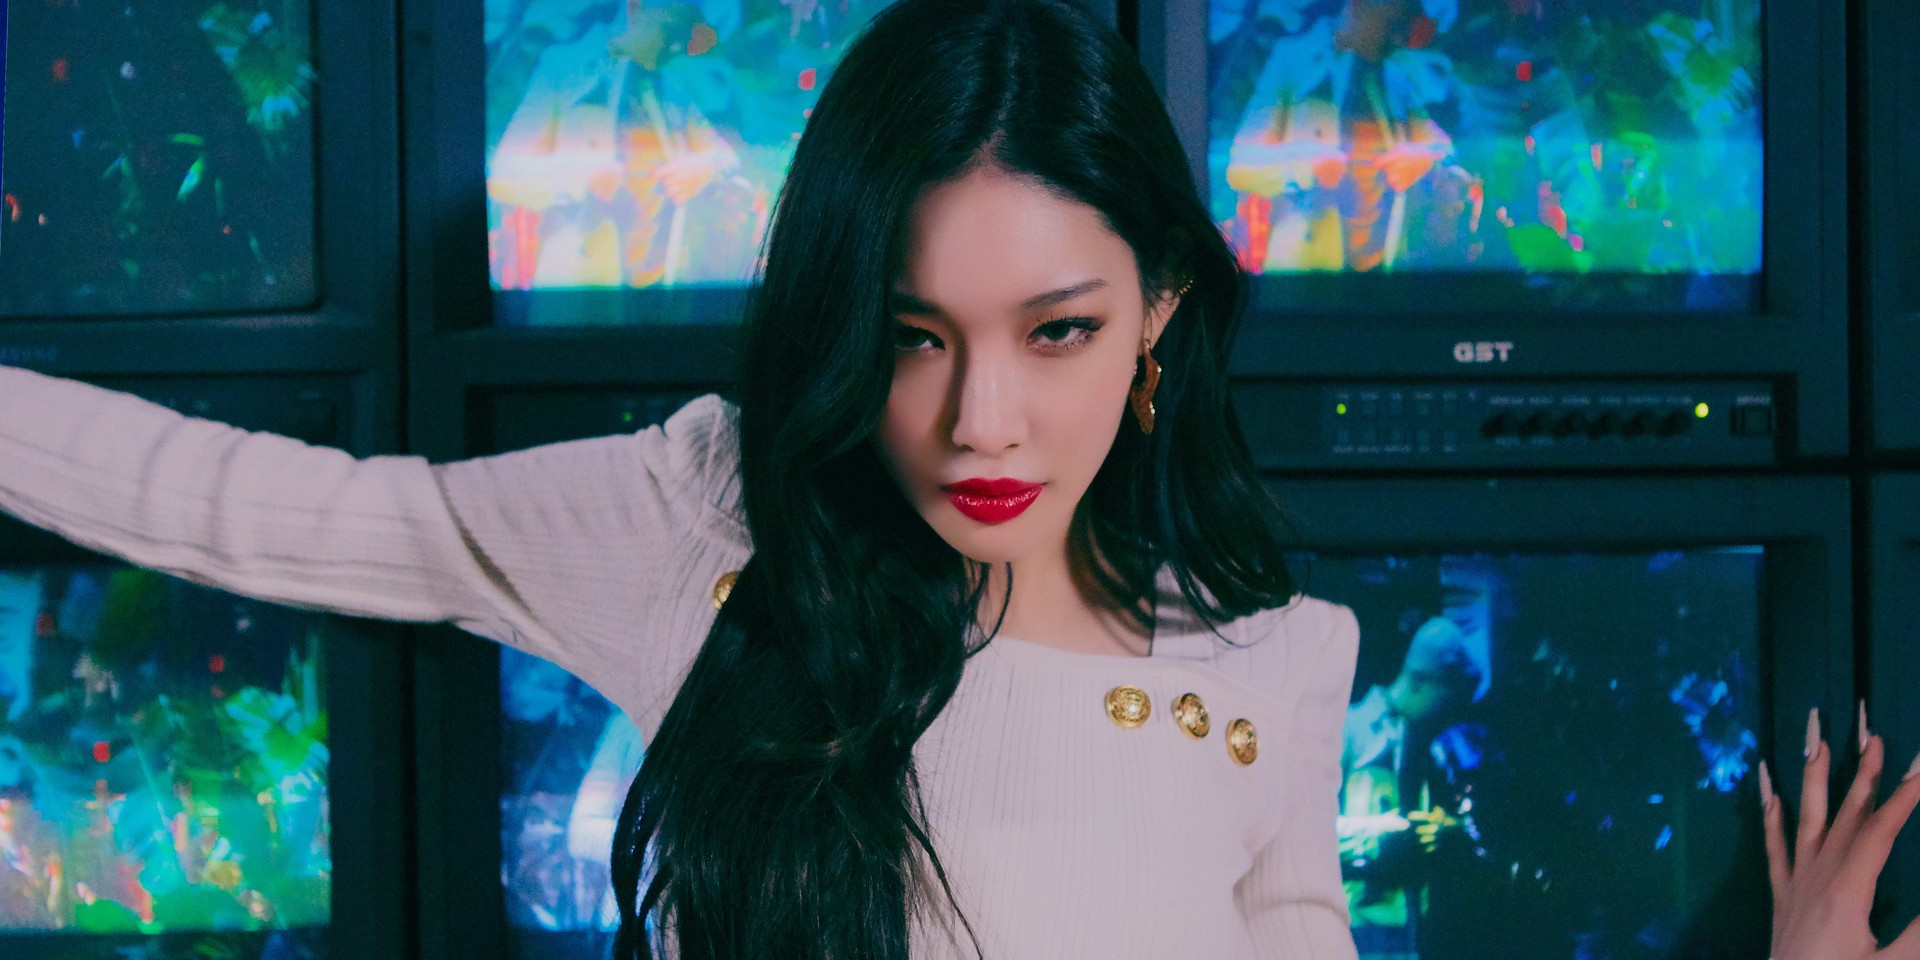 CHUNG HA on being an ambassador for Korean culture and her journey as an artist